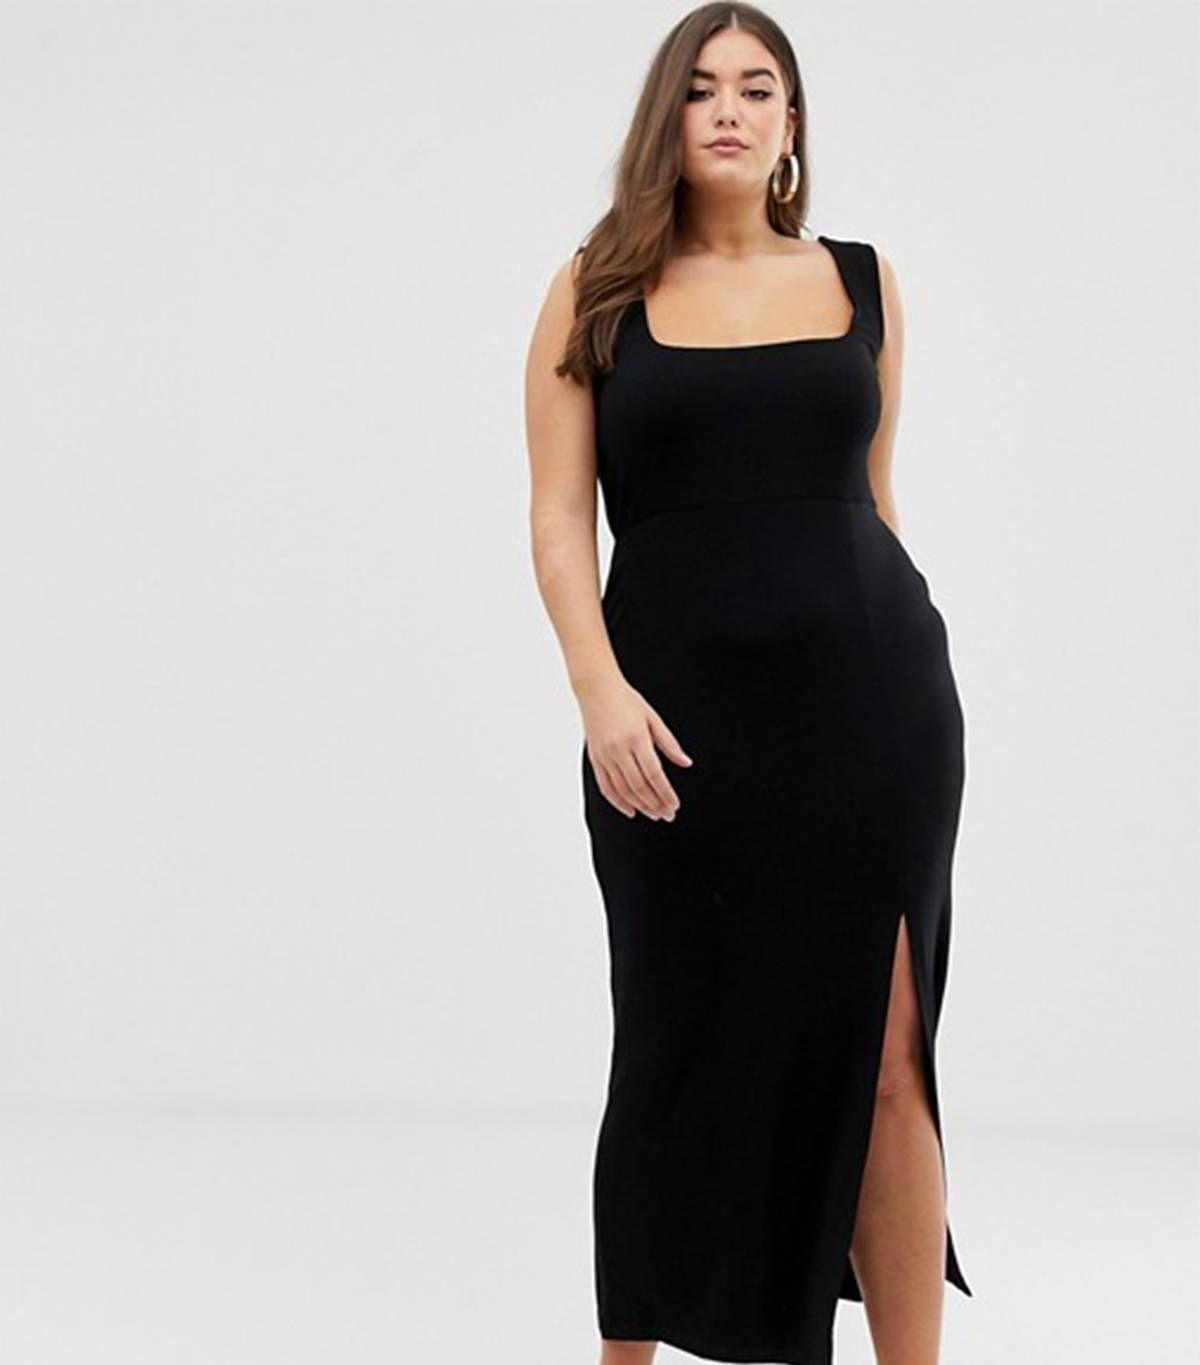 17 Black Dresses You Can Totally Wear To A Wedding Summer Maxi Dress Dresses Maxi Dress Pattern